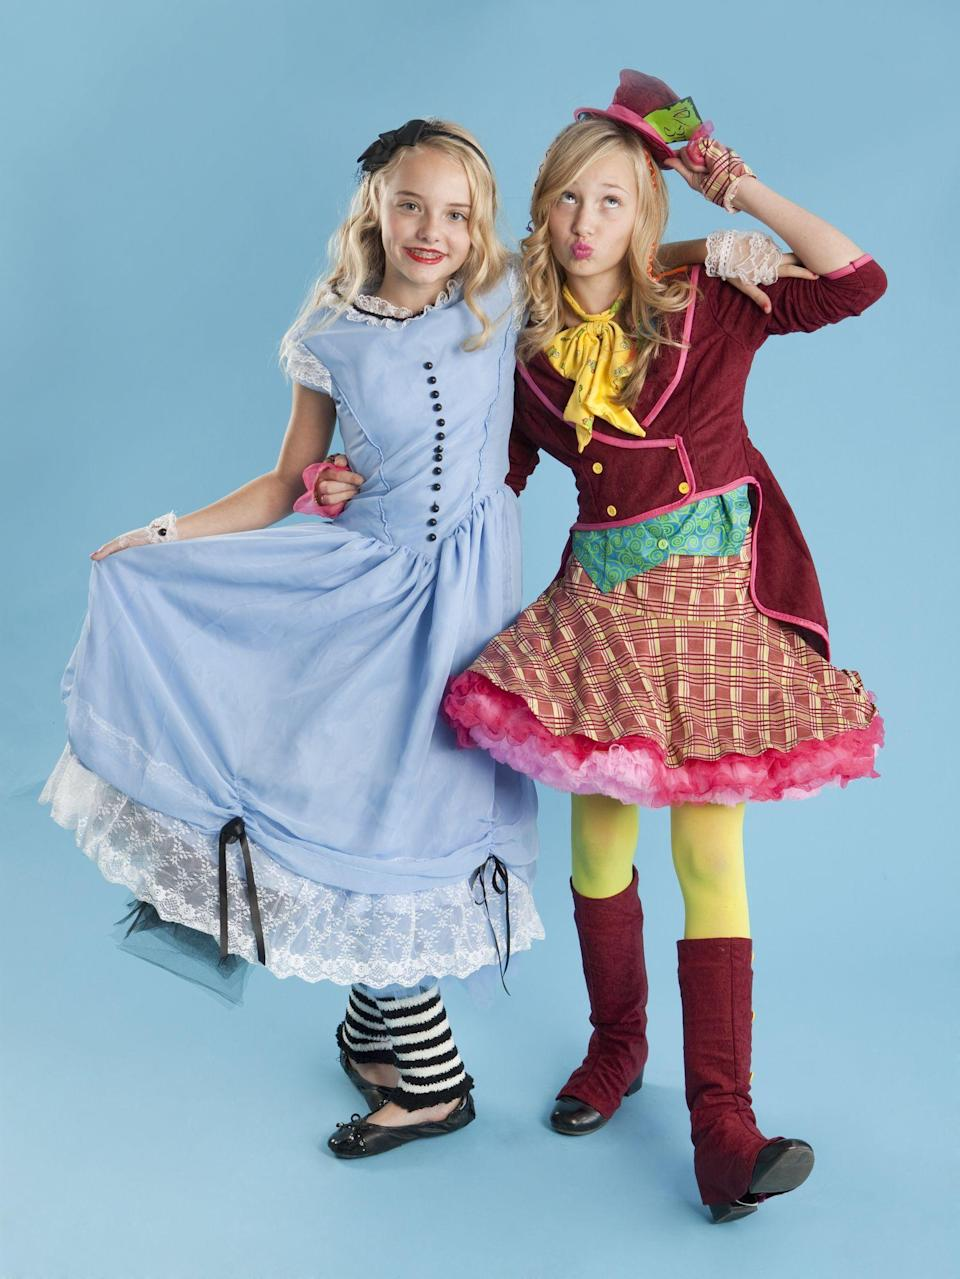 """<p>Every Halloween, do you tend to fall down the internet rabbit hole in search of next-level DIY costume ideas? Why not lean into the madness—seriously—by channeling your <a href=""""https://www.countryliving.com/diy-crafts/g28594281/book-character-costumes/"""" rel=""""nofollow noopener"""" target=""""_blank"""" data-ylk=""""slk:book character costumes"""" class=""""link rapid-noclick-resp"""">book character costumes</a>, in particular the enduringly popular tale <em>Alice In Wonderland? </em></p><p>Story characters range from cute to quirky to a little bit spooky, so there really is a Halloween costume idea for everyone, from <a href=""""https://www.countryliving.com/diy-crafts/g21603260/diy-halloween-costumes-for-tweens/"""" rel=""""nofollow noopener"""" target=""""_blank"""" data-ylk=""""slk:Halloween costumes for tweens"""" class=""""link rapid-noclick-resp"""">Halloween costumes for tweens</a> to <a href=""""https://www.countryliving.com/diy-crafts/a22142517/diy-mens-halloween-costumes/"""" rel=""""nofollow noopener"""" target=""""_blank"""" data-ylk=""""slk:DIY men's Halloween costumes"""" class=""""link rapid-noclick-resp"""">DIY men's Halloween costumes</a>. In that spirit, we rounded up these DIY <em>Alice In Wonderland</em> costume ideas, including Alice herself, Queen of Hearts, the Mad Hatter, Caterpillar, and more, to get your creative juices flowing.<br><br>With skill levels ranging from simple (think basic crafting know-how) to complex (you have a sewing machine and know how to use it, right?), you'll be able to channel your favorite characters while staying within a reasonable budget. Don't forget <a href=""""https://www.countryliving.com/diy-crafts/g21527022/cat-makeup-ideas/"""" rel=""""nofollow noopener"""" target=""""_blank"""" data-ylk=""""slk:cat makeup ideas"""" class=""""link rapid-noclick-resp"""">cat makeup ideas</a> for your Cheshire Cat costume (so creepy!). And if you're just flat out of time (perhaps the White Rabbit is your spirit animal?), we've included a few costume ideas you can shop online right now.<br><br>Explore these <em>Alice in Wonderland</"""